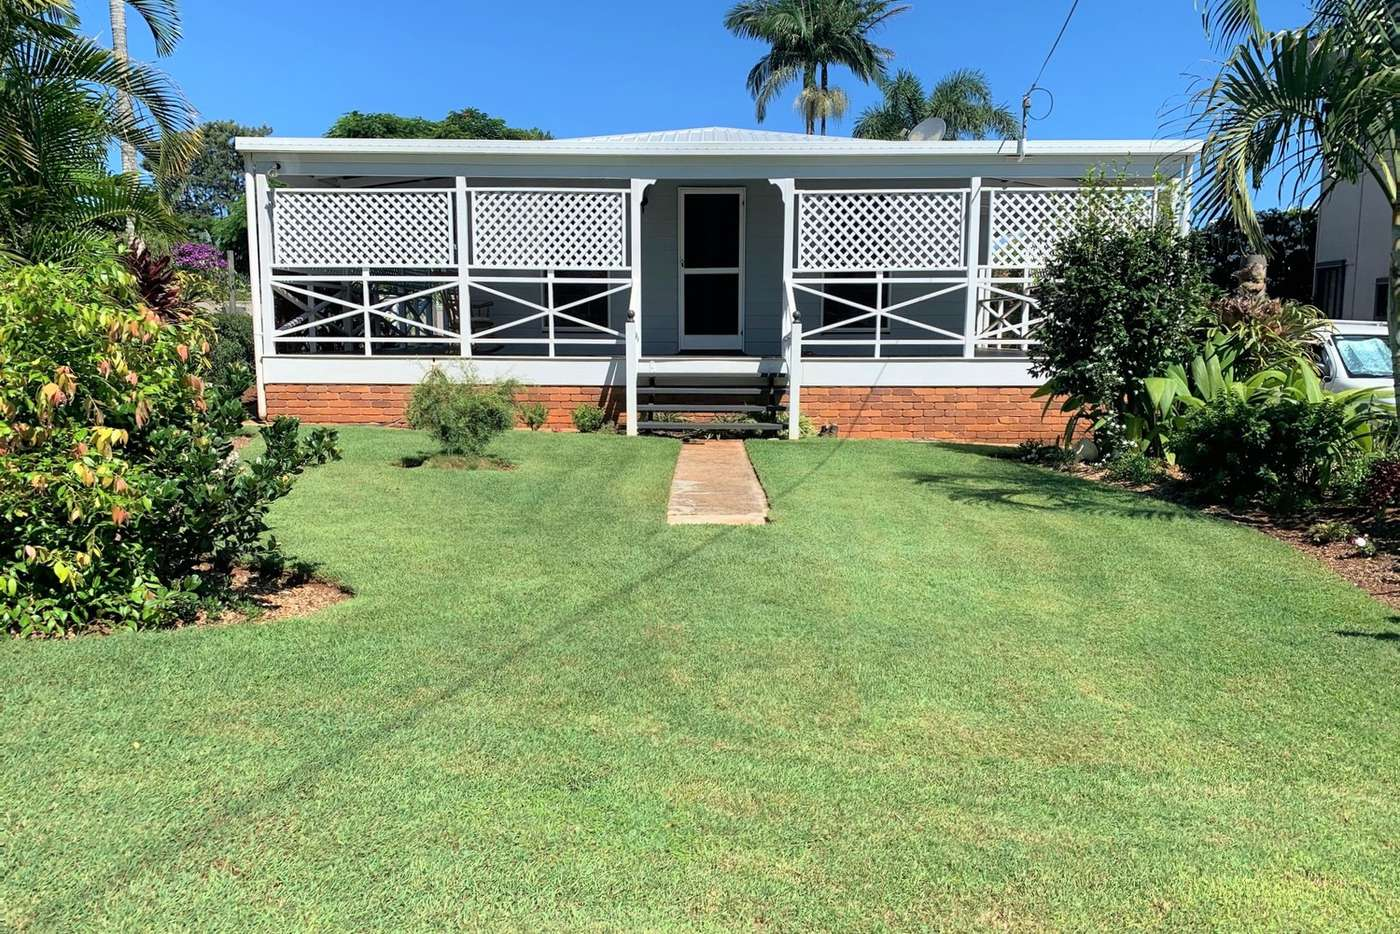 Main view of Homely house listing, 8 Michael Street, Lamb Island QLD 4184